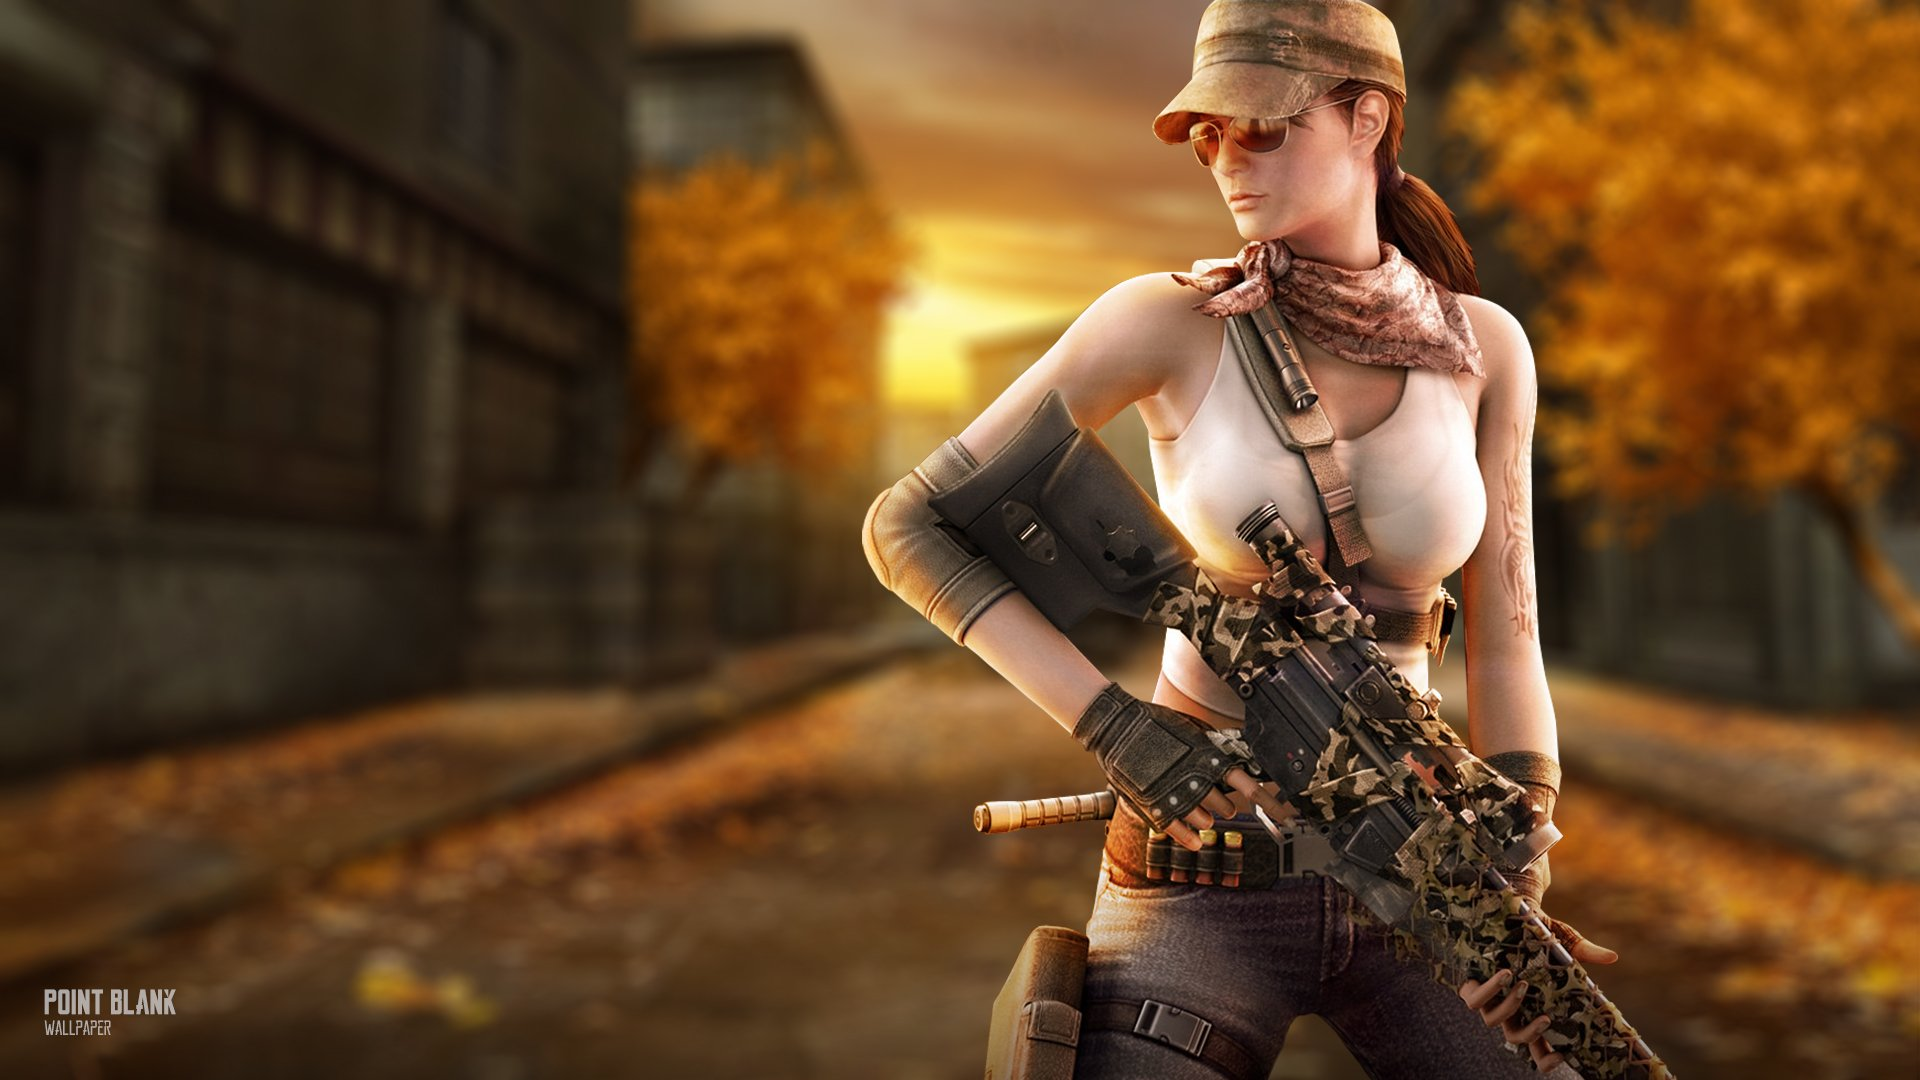 44 Point Blank 2015 Wallpaper On Wallpapersafari